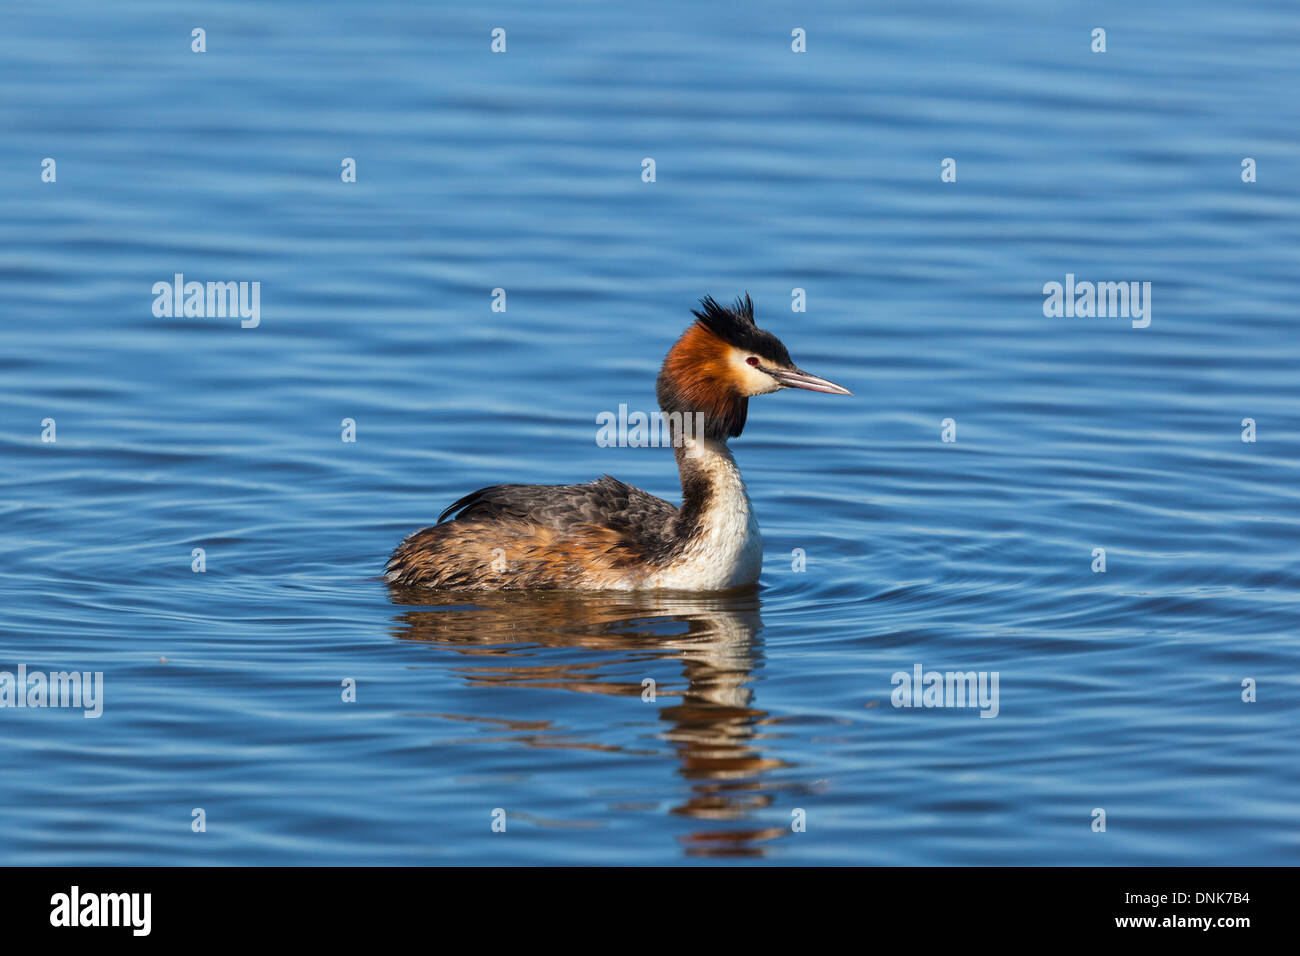 Great crested grebe swimming in lake - Stock Image